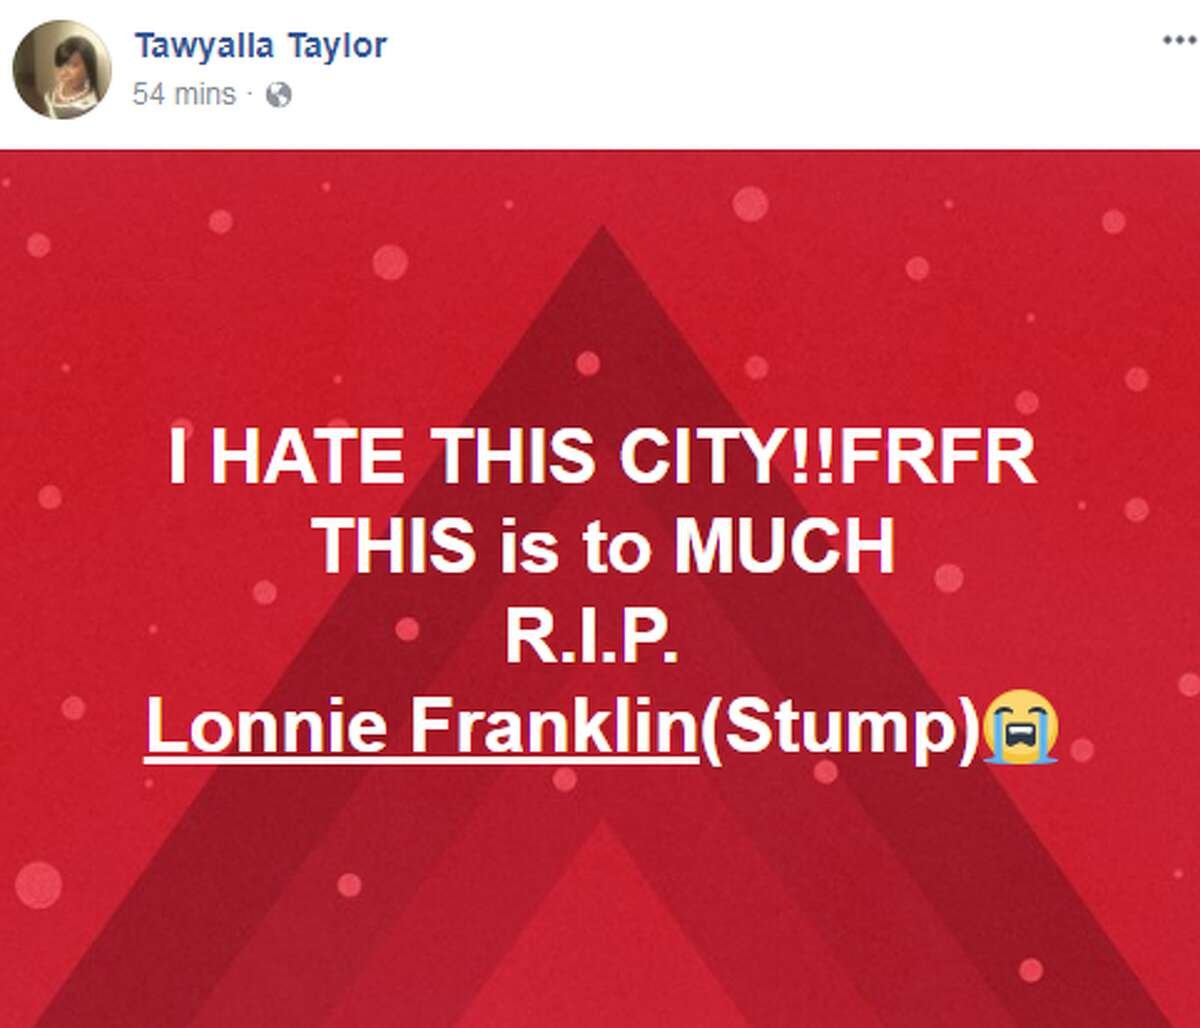 Tawyalla Taylor: I HATE THIS CITY!!FRFR THIS is to MUCH R.I.P. Lonnie Franklin(Stump)